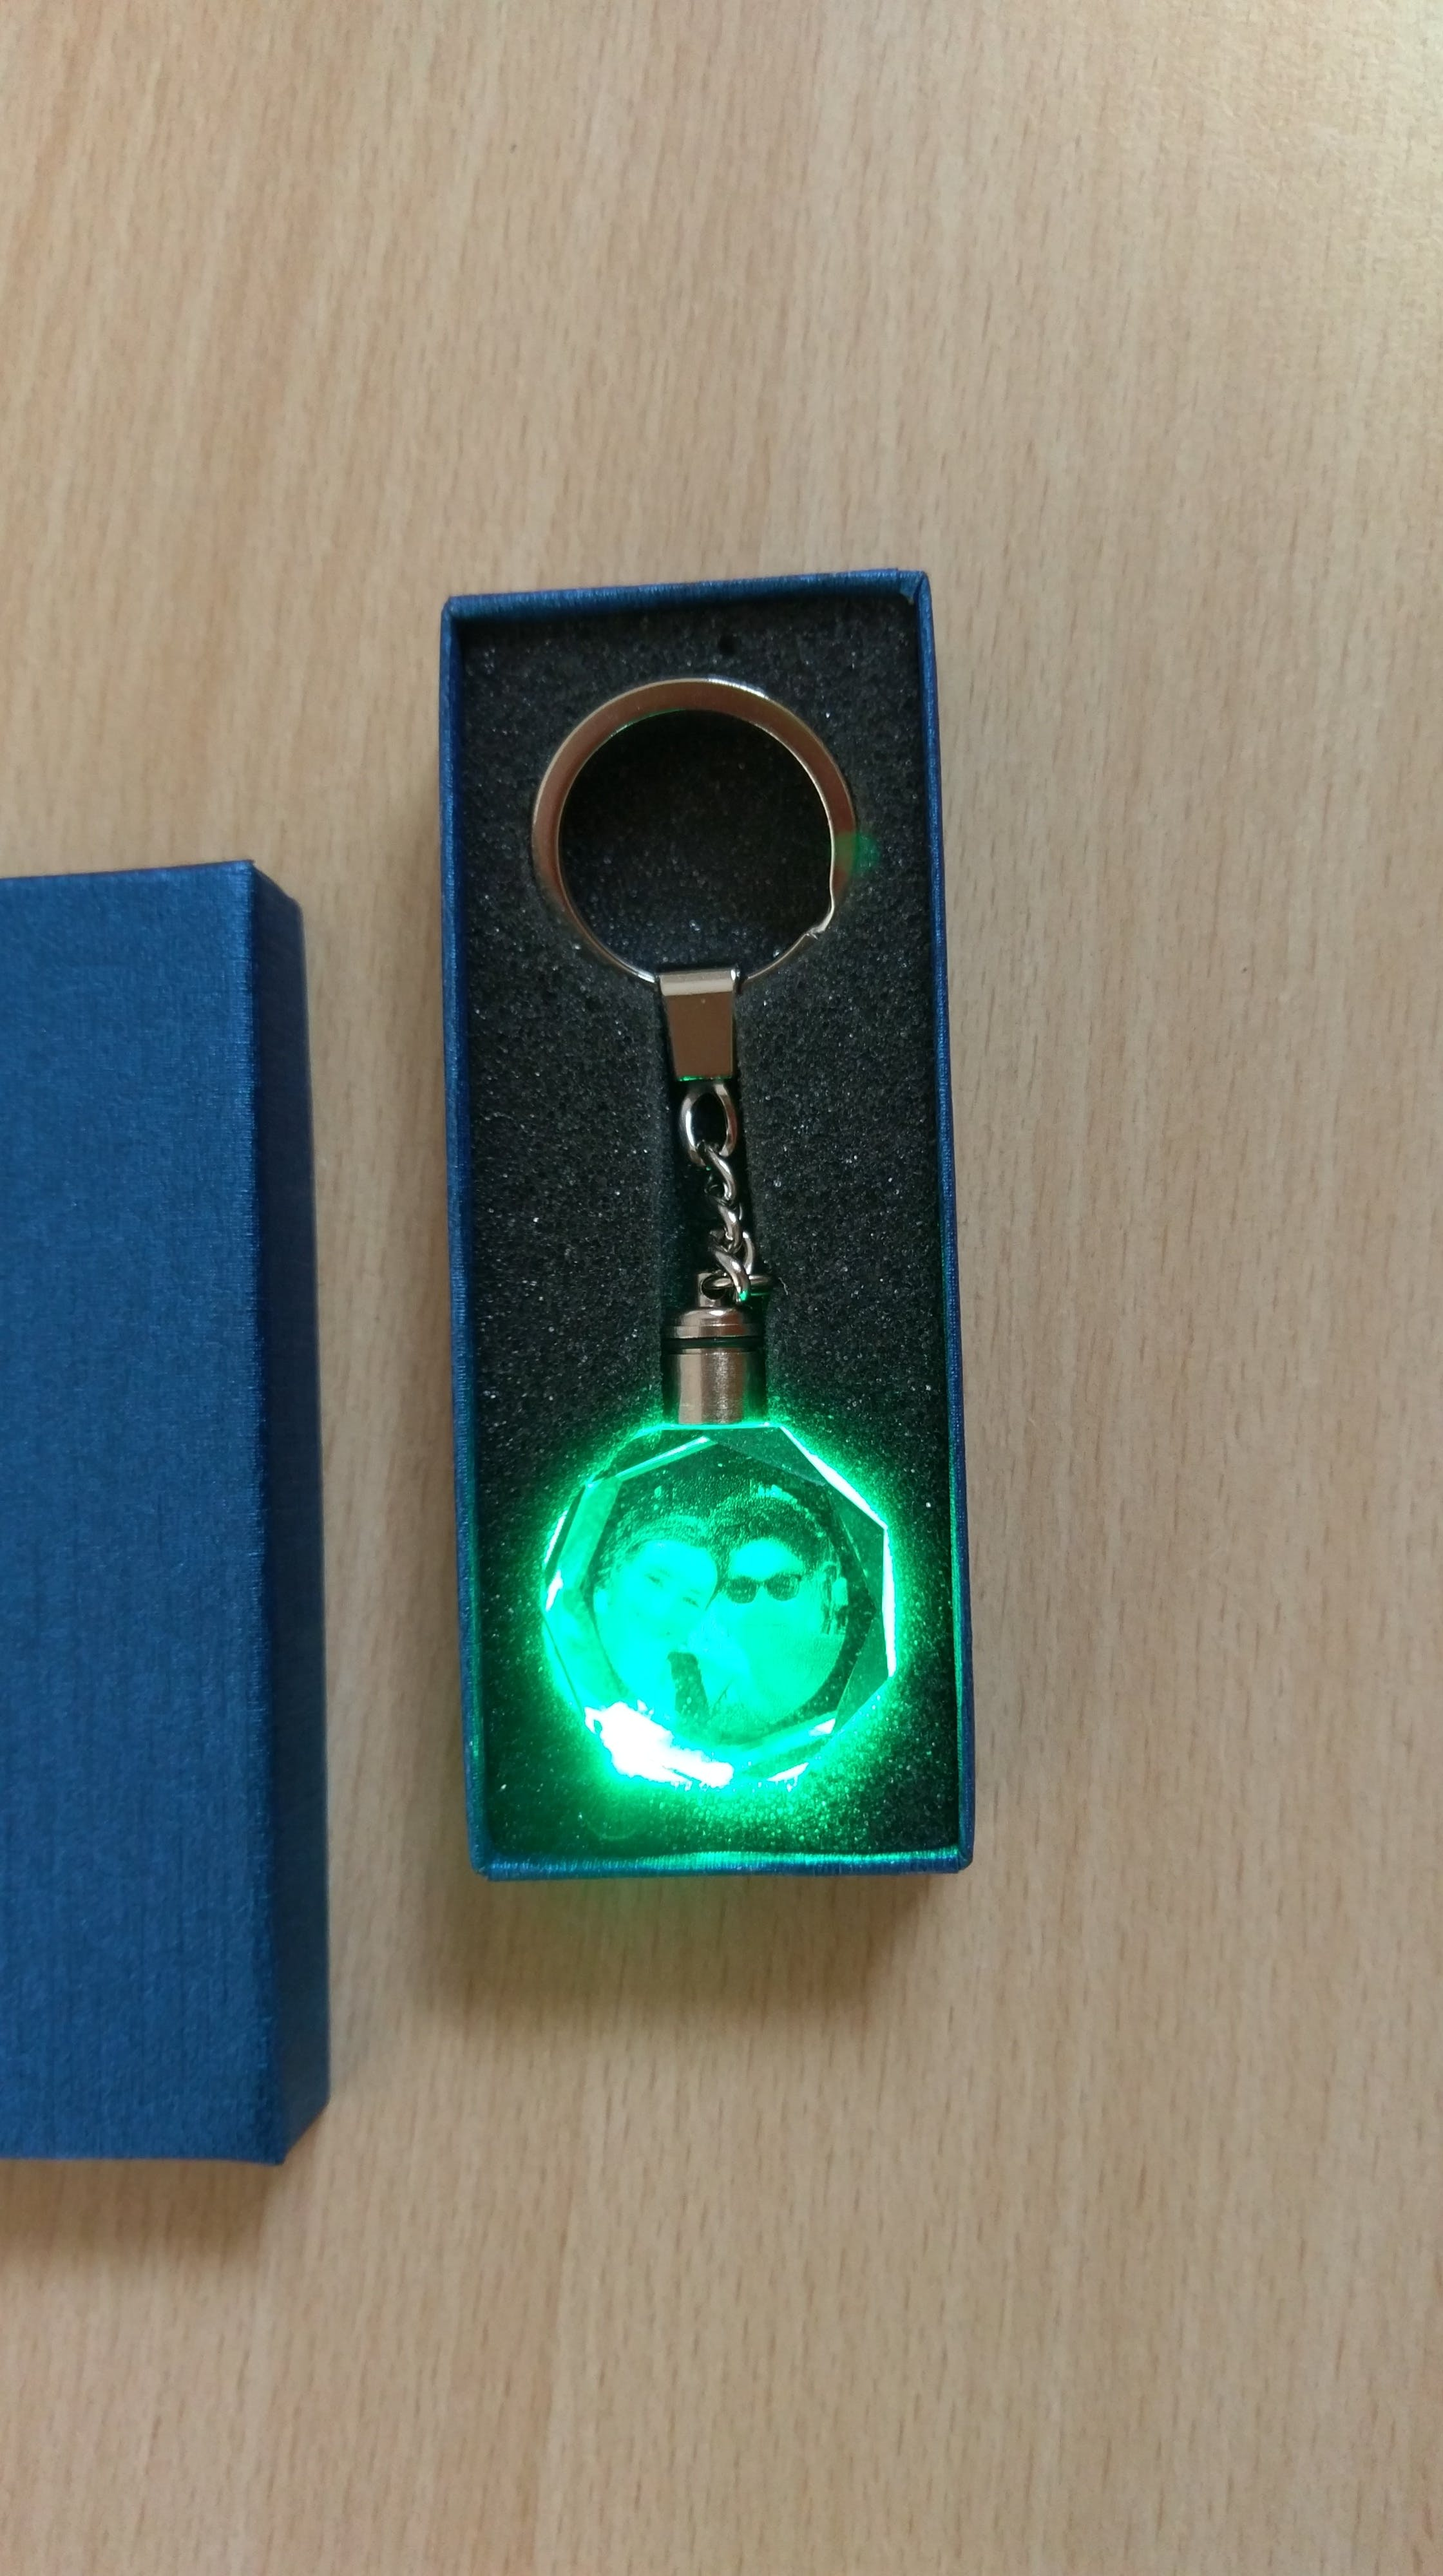 Personalized Your Own Photo - Laser Engraving Crystal Glass Keychain with LCD Light